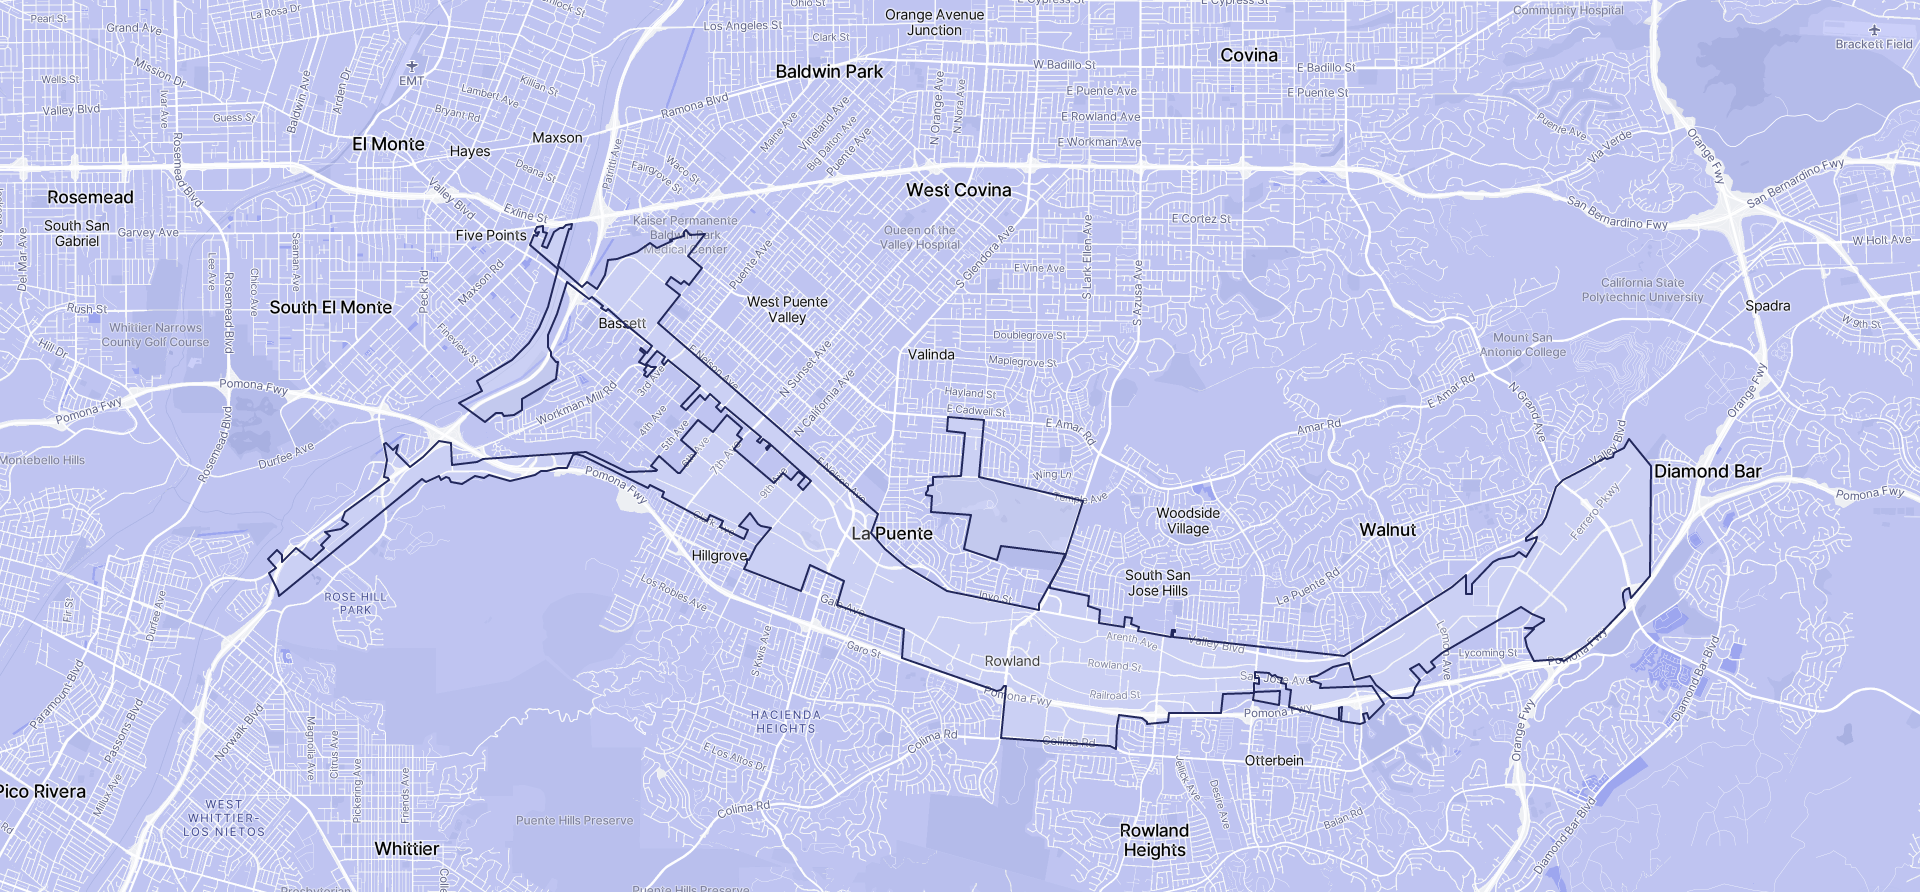 Image of Industry boundaries on a map.